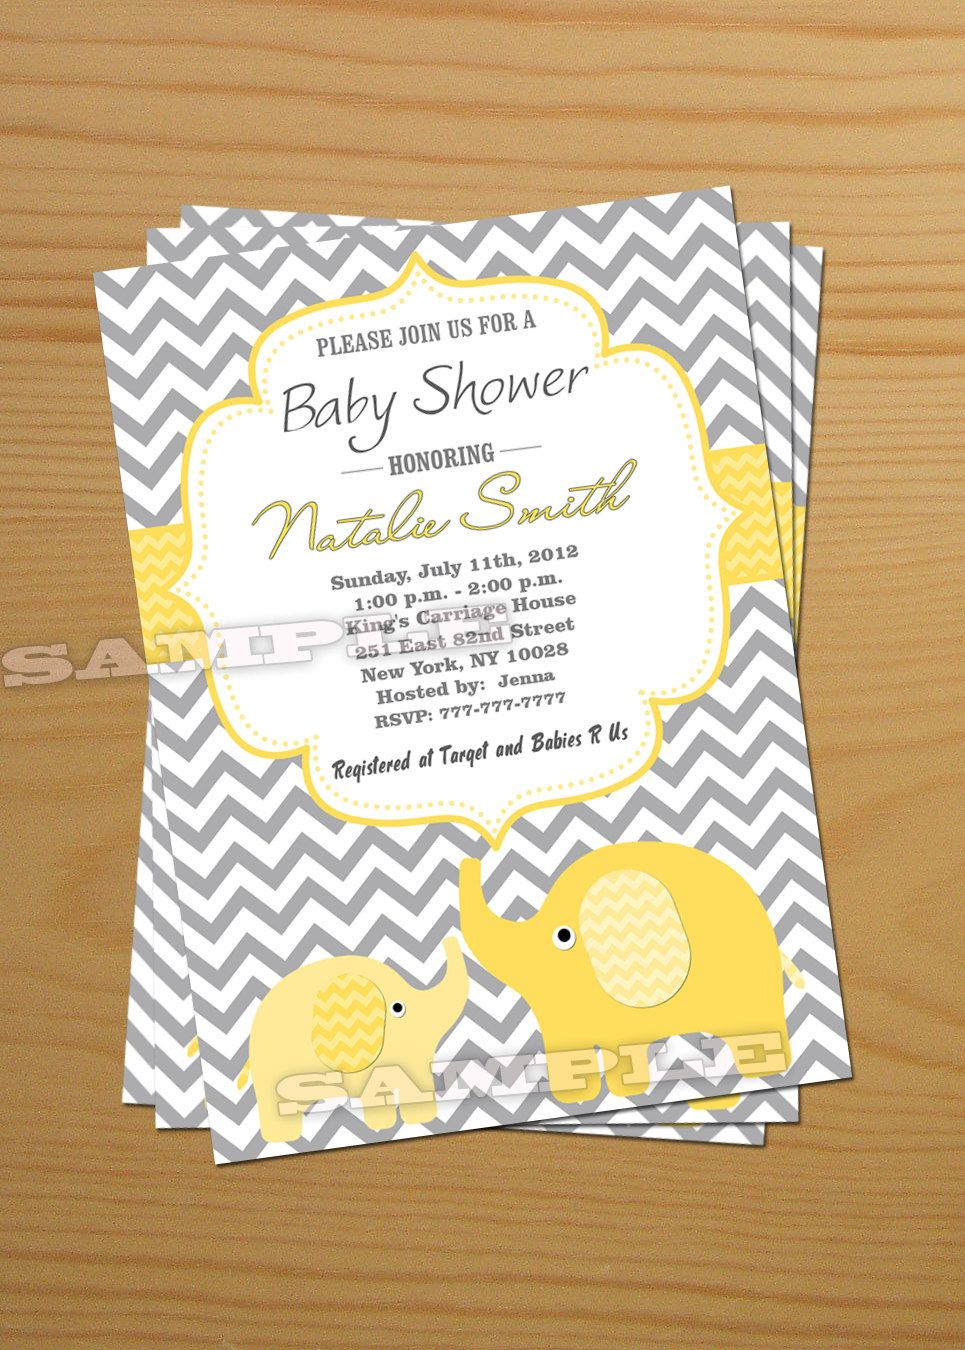 Full Size of Baby Shower:inspirational Elephant Baby Shower Invitations Photo Concepts Baby Shower Registry List With Baby Shower Nail Designs Plus Indian Baby Shower Together With Baby Shower Crafts As Well As Baby Shower Checklist